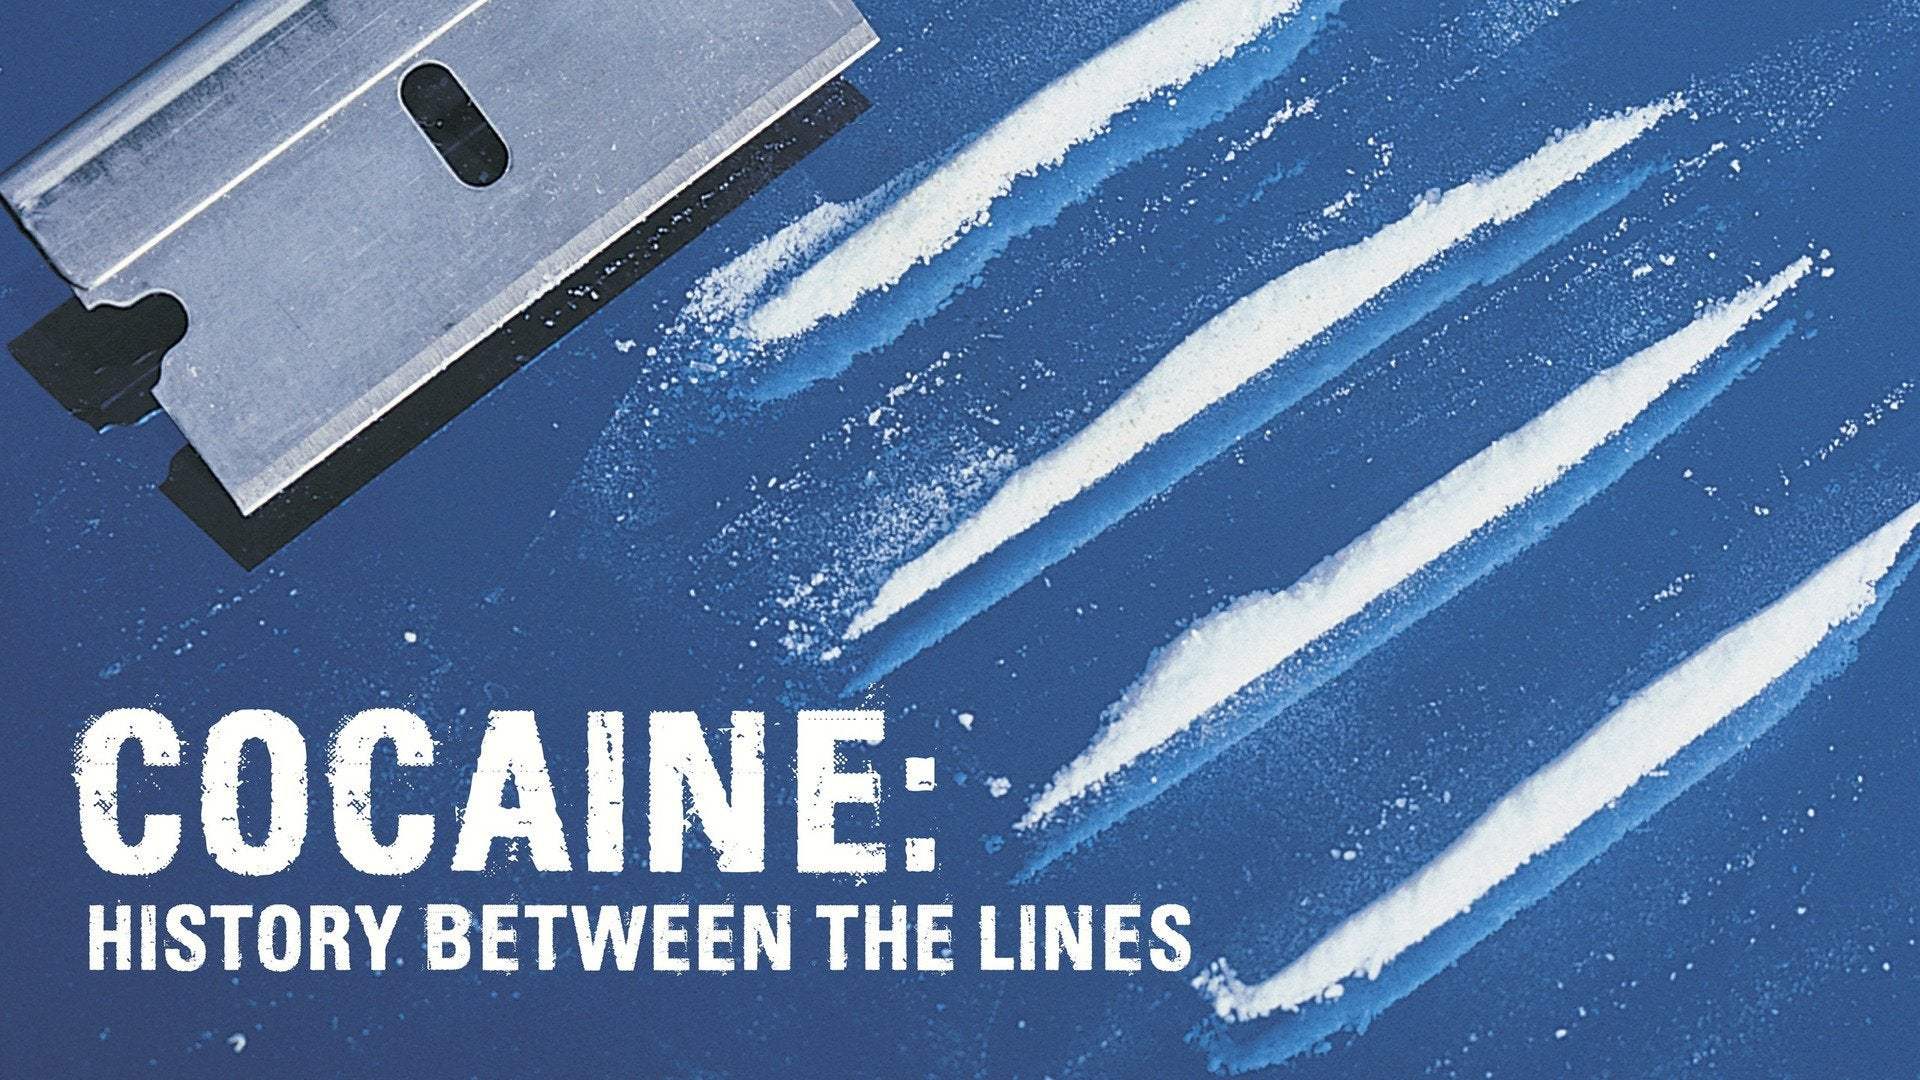 Cocaine: History Between the Lines